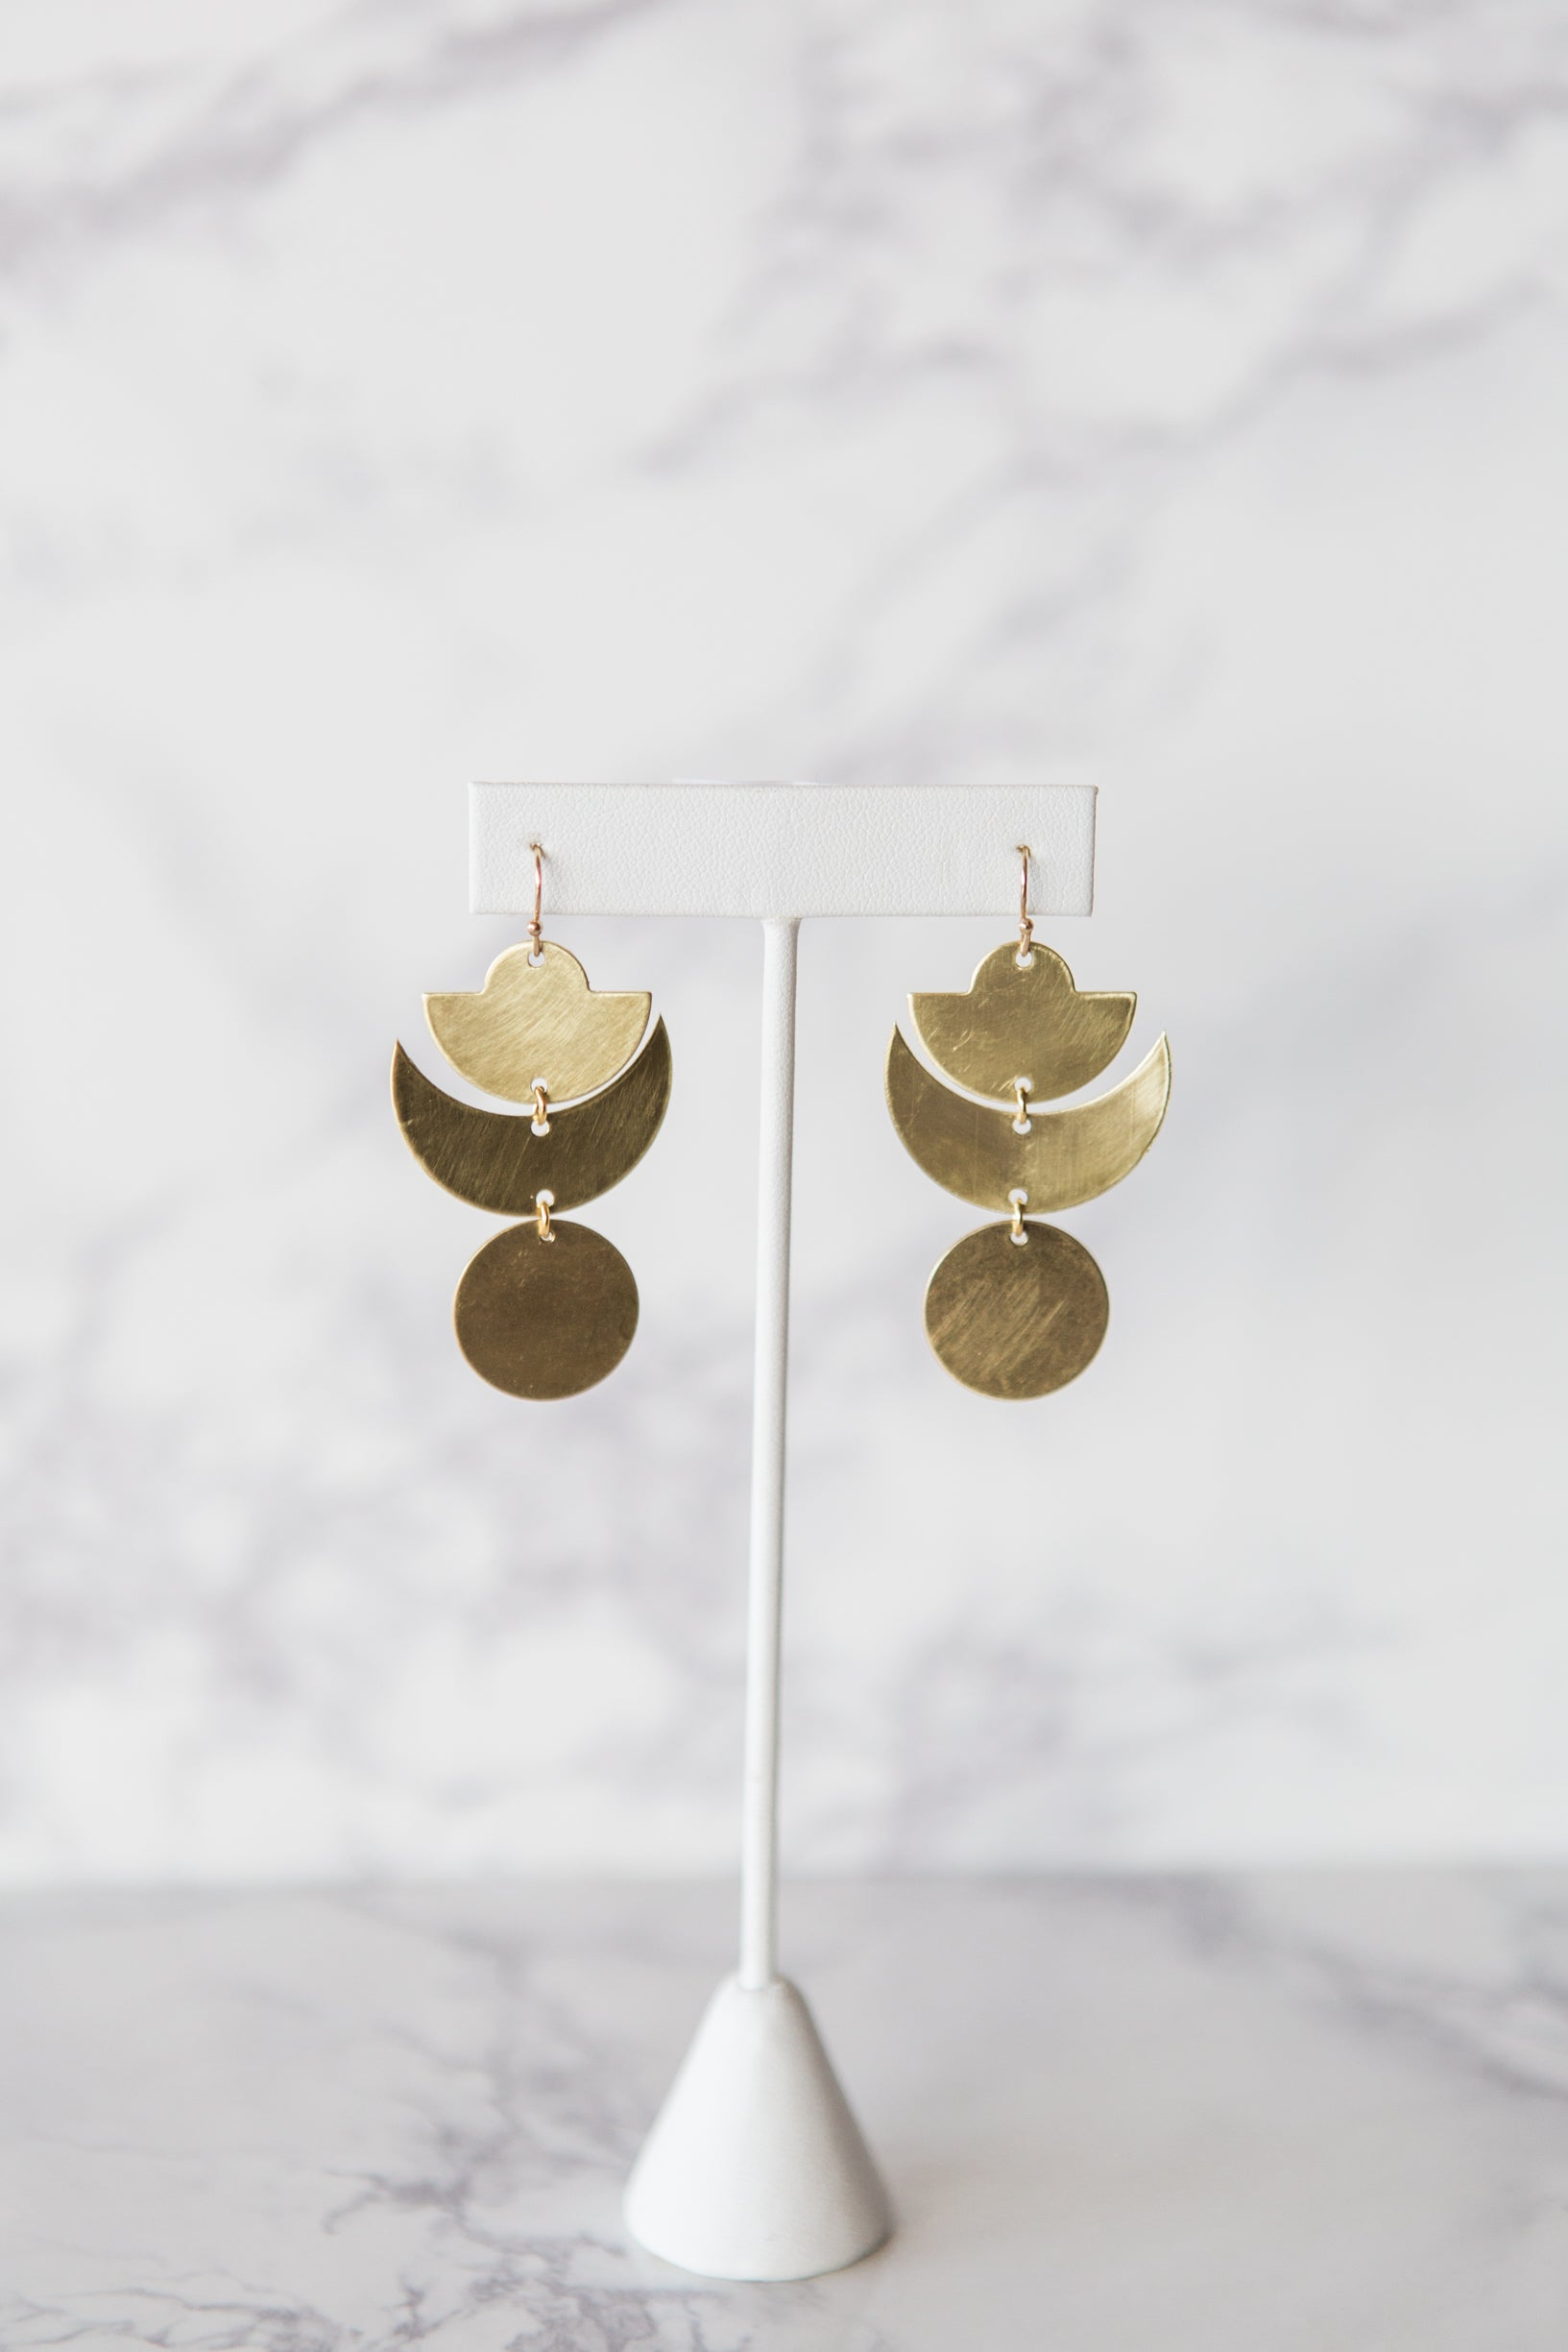 Moon Phase Dangle Earrings - M Street Studio